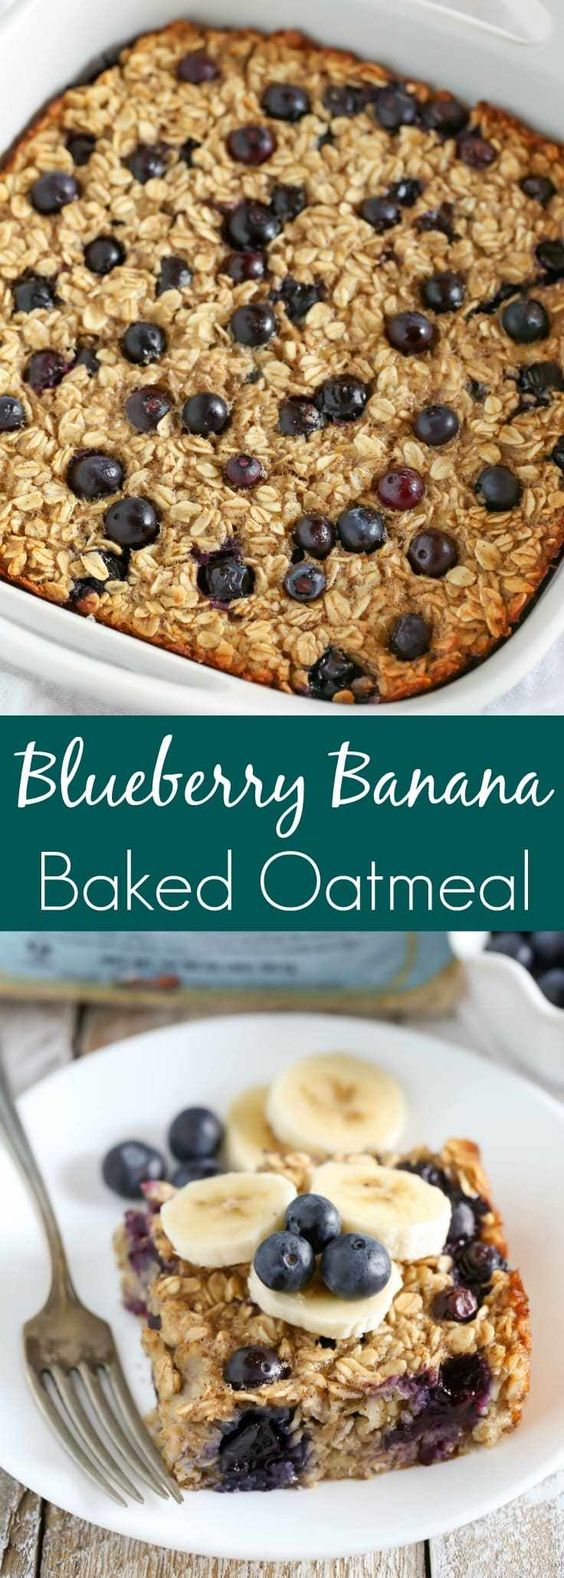 Delicious Blueberry Banana Baked Oatmeal